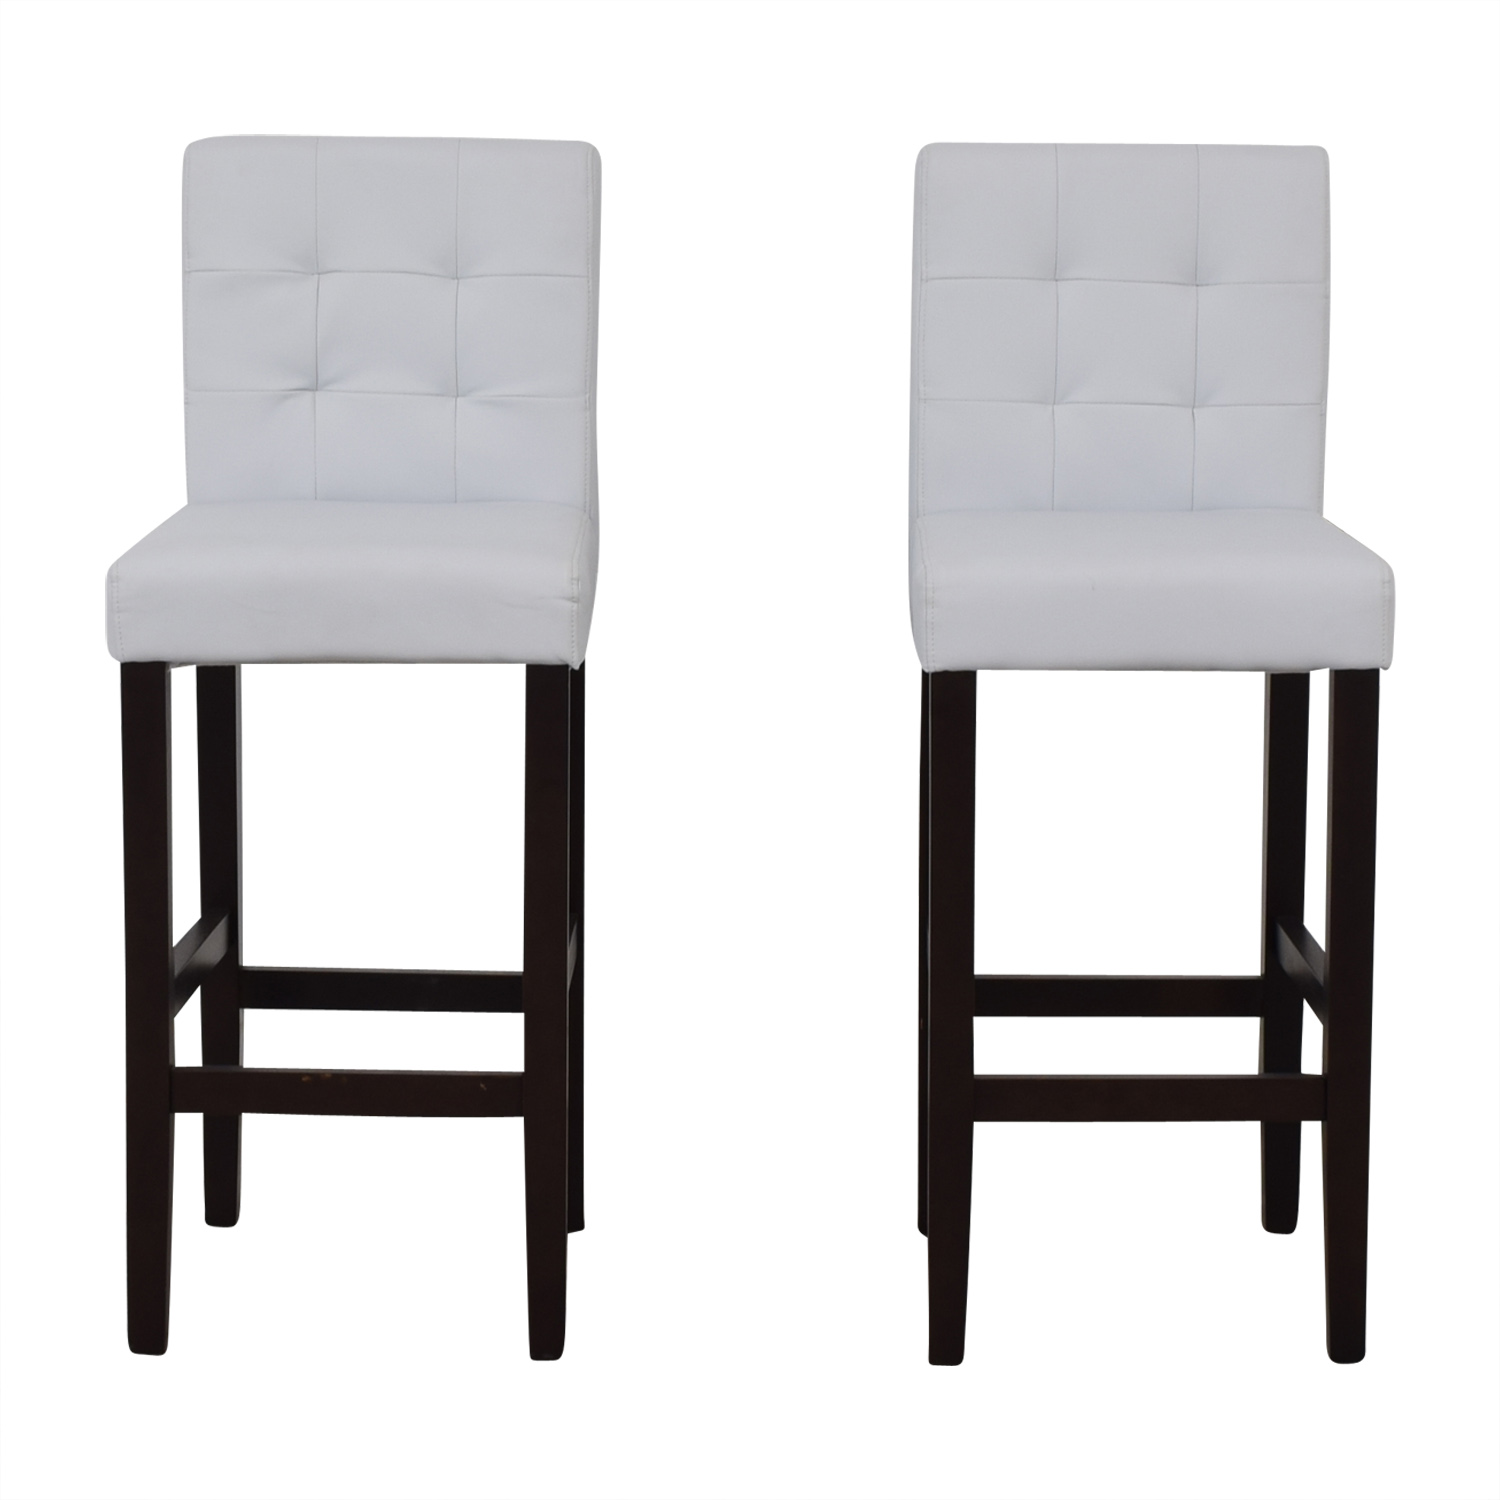 Crate & Barrel Crate & Barrel Tufted White Barstools